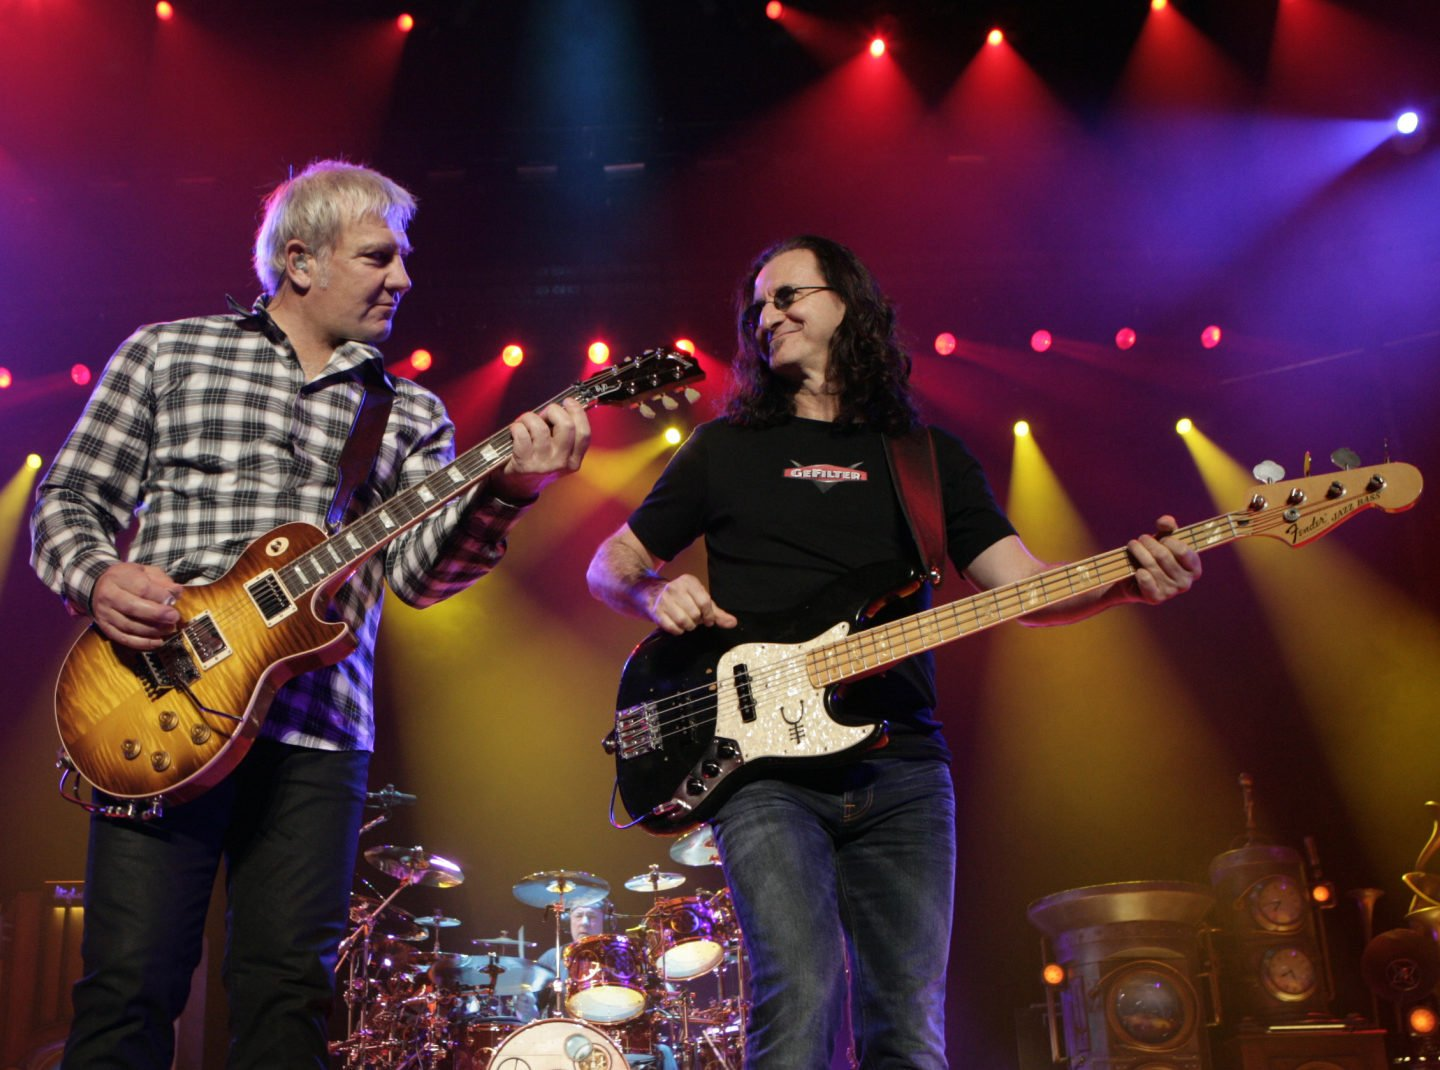 16 9 e1610450942291 20 Things You Probably Never Knew About Rush